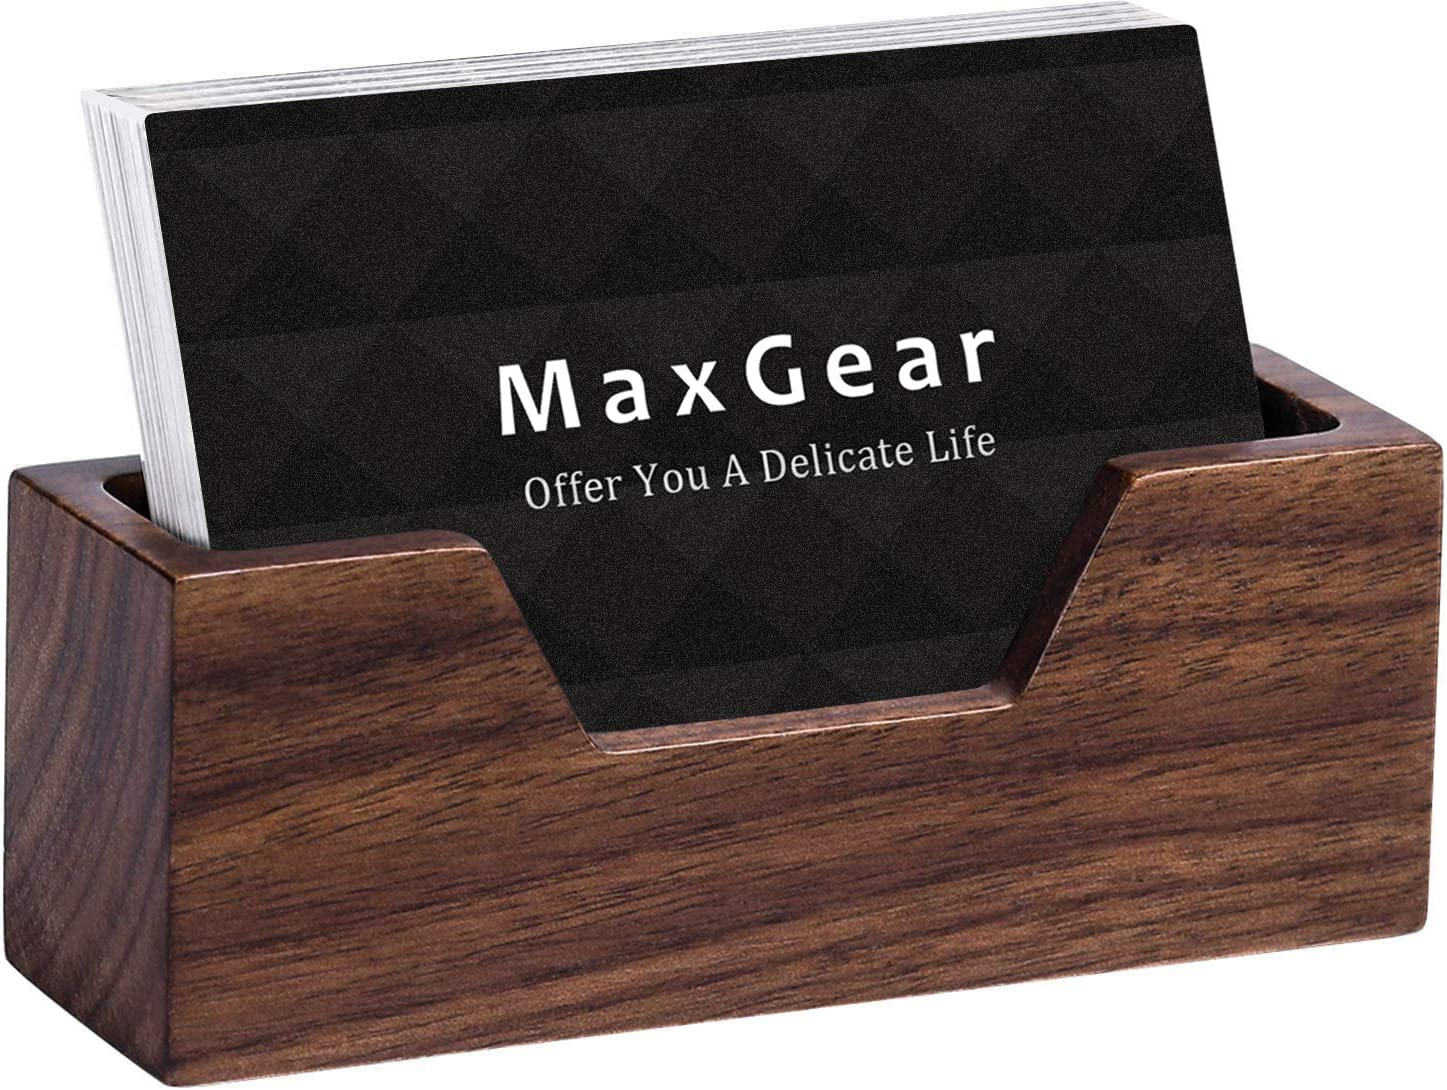 MaxGear Wood Business Card Holder for Desk Business Card Display Holder Desktop Business Card Stand for Office,Tabletop - Rectangle with Open Design